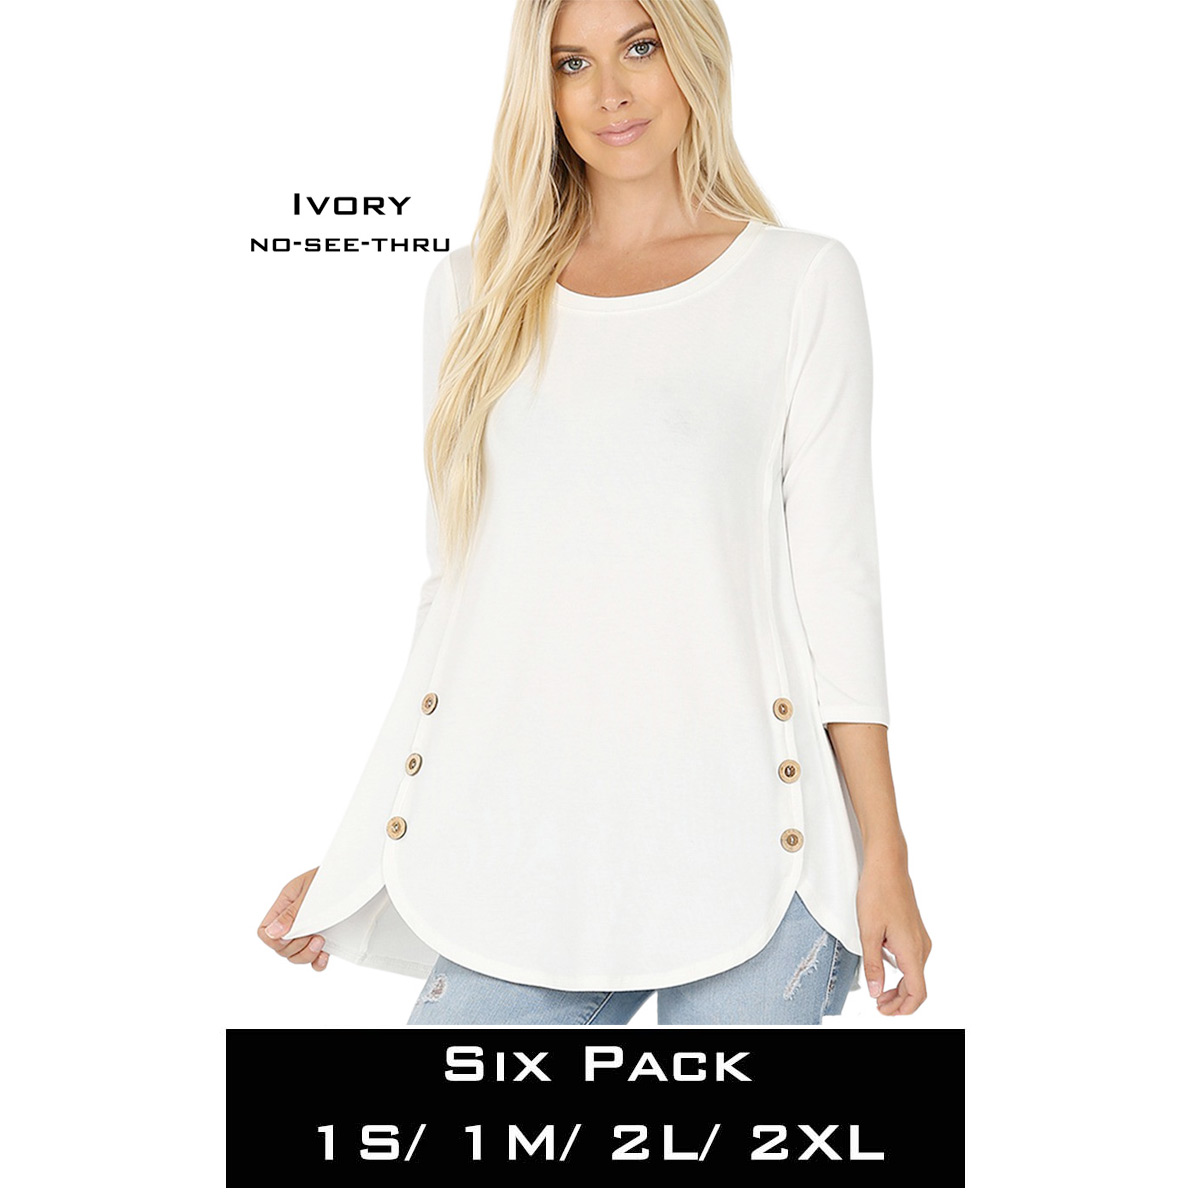 IVORY(SIX PACK) 3/4 Sleeve Side Wood Buttons Top 2032(1S,1M,2L,2XL)